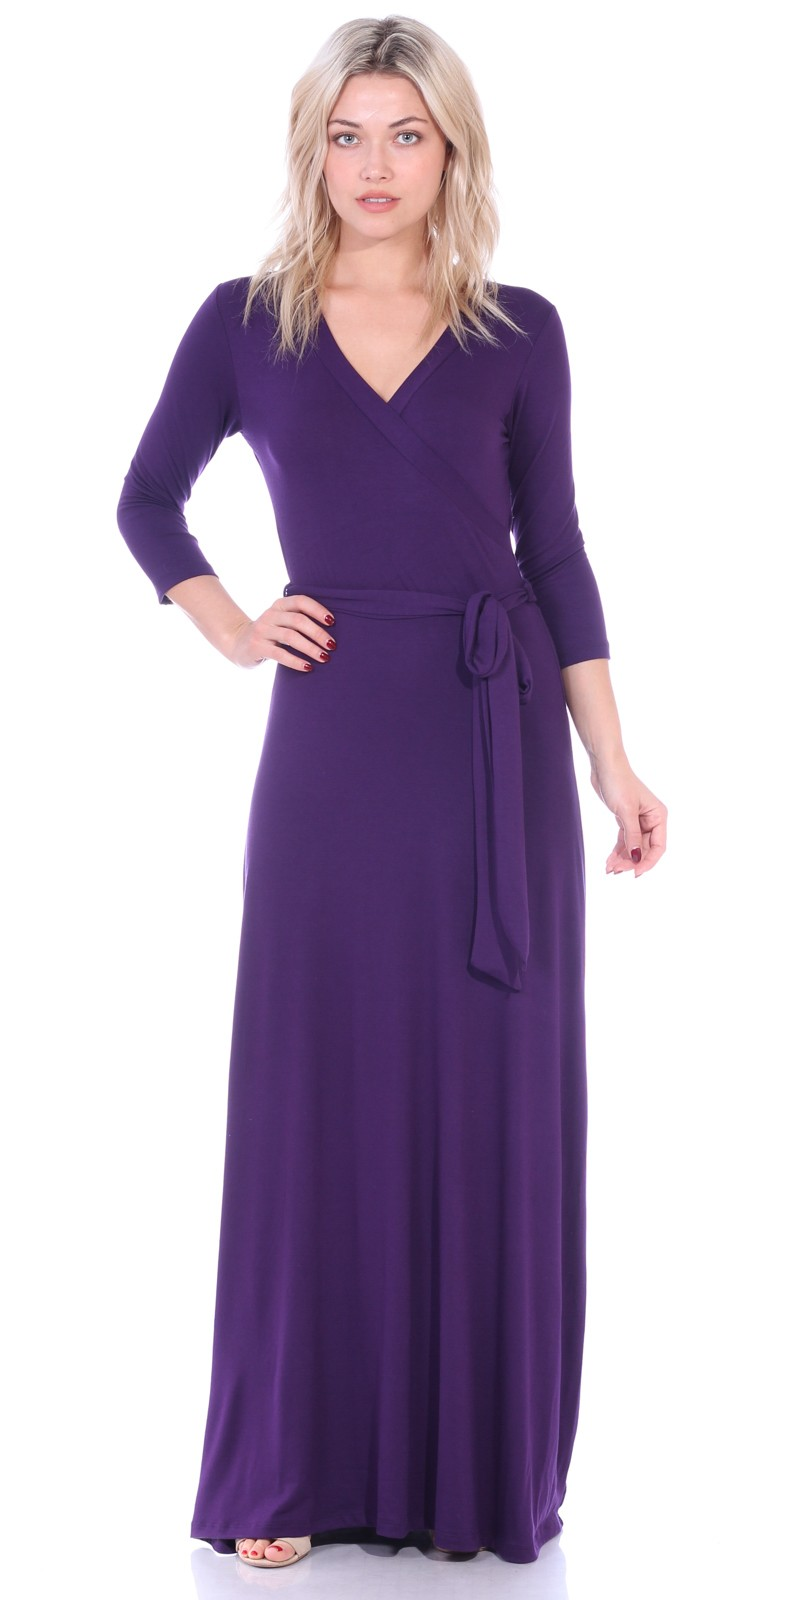 Maxi Dress With Sleeves - Casual Colorful Floral Summer Wedding Prints - Made In USA - Eggplant